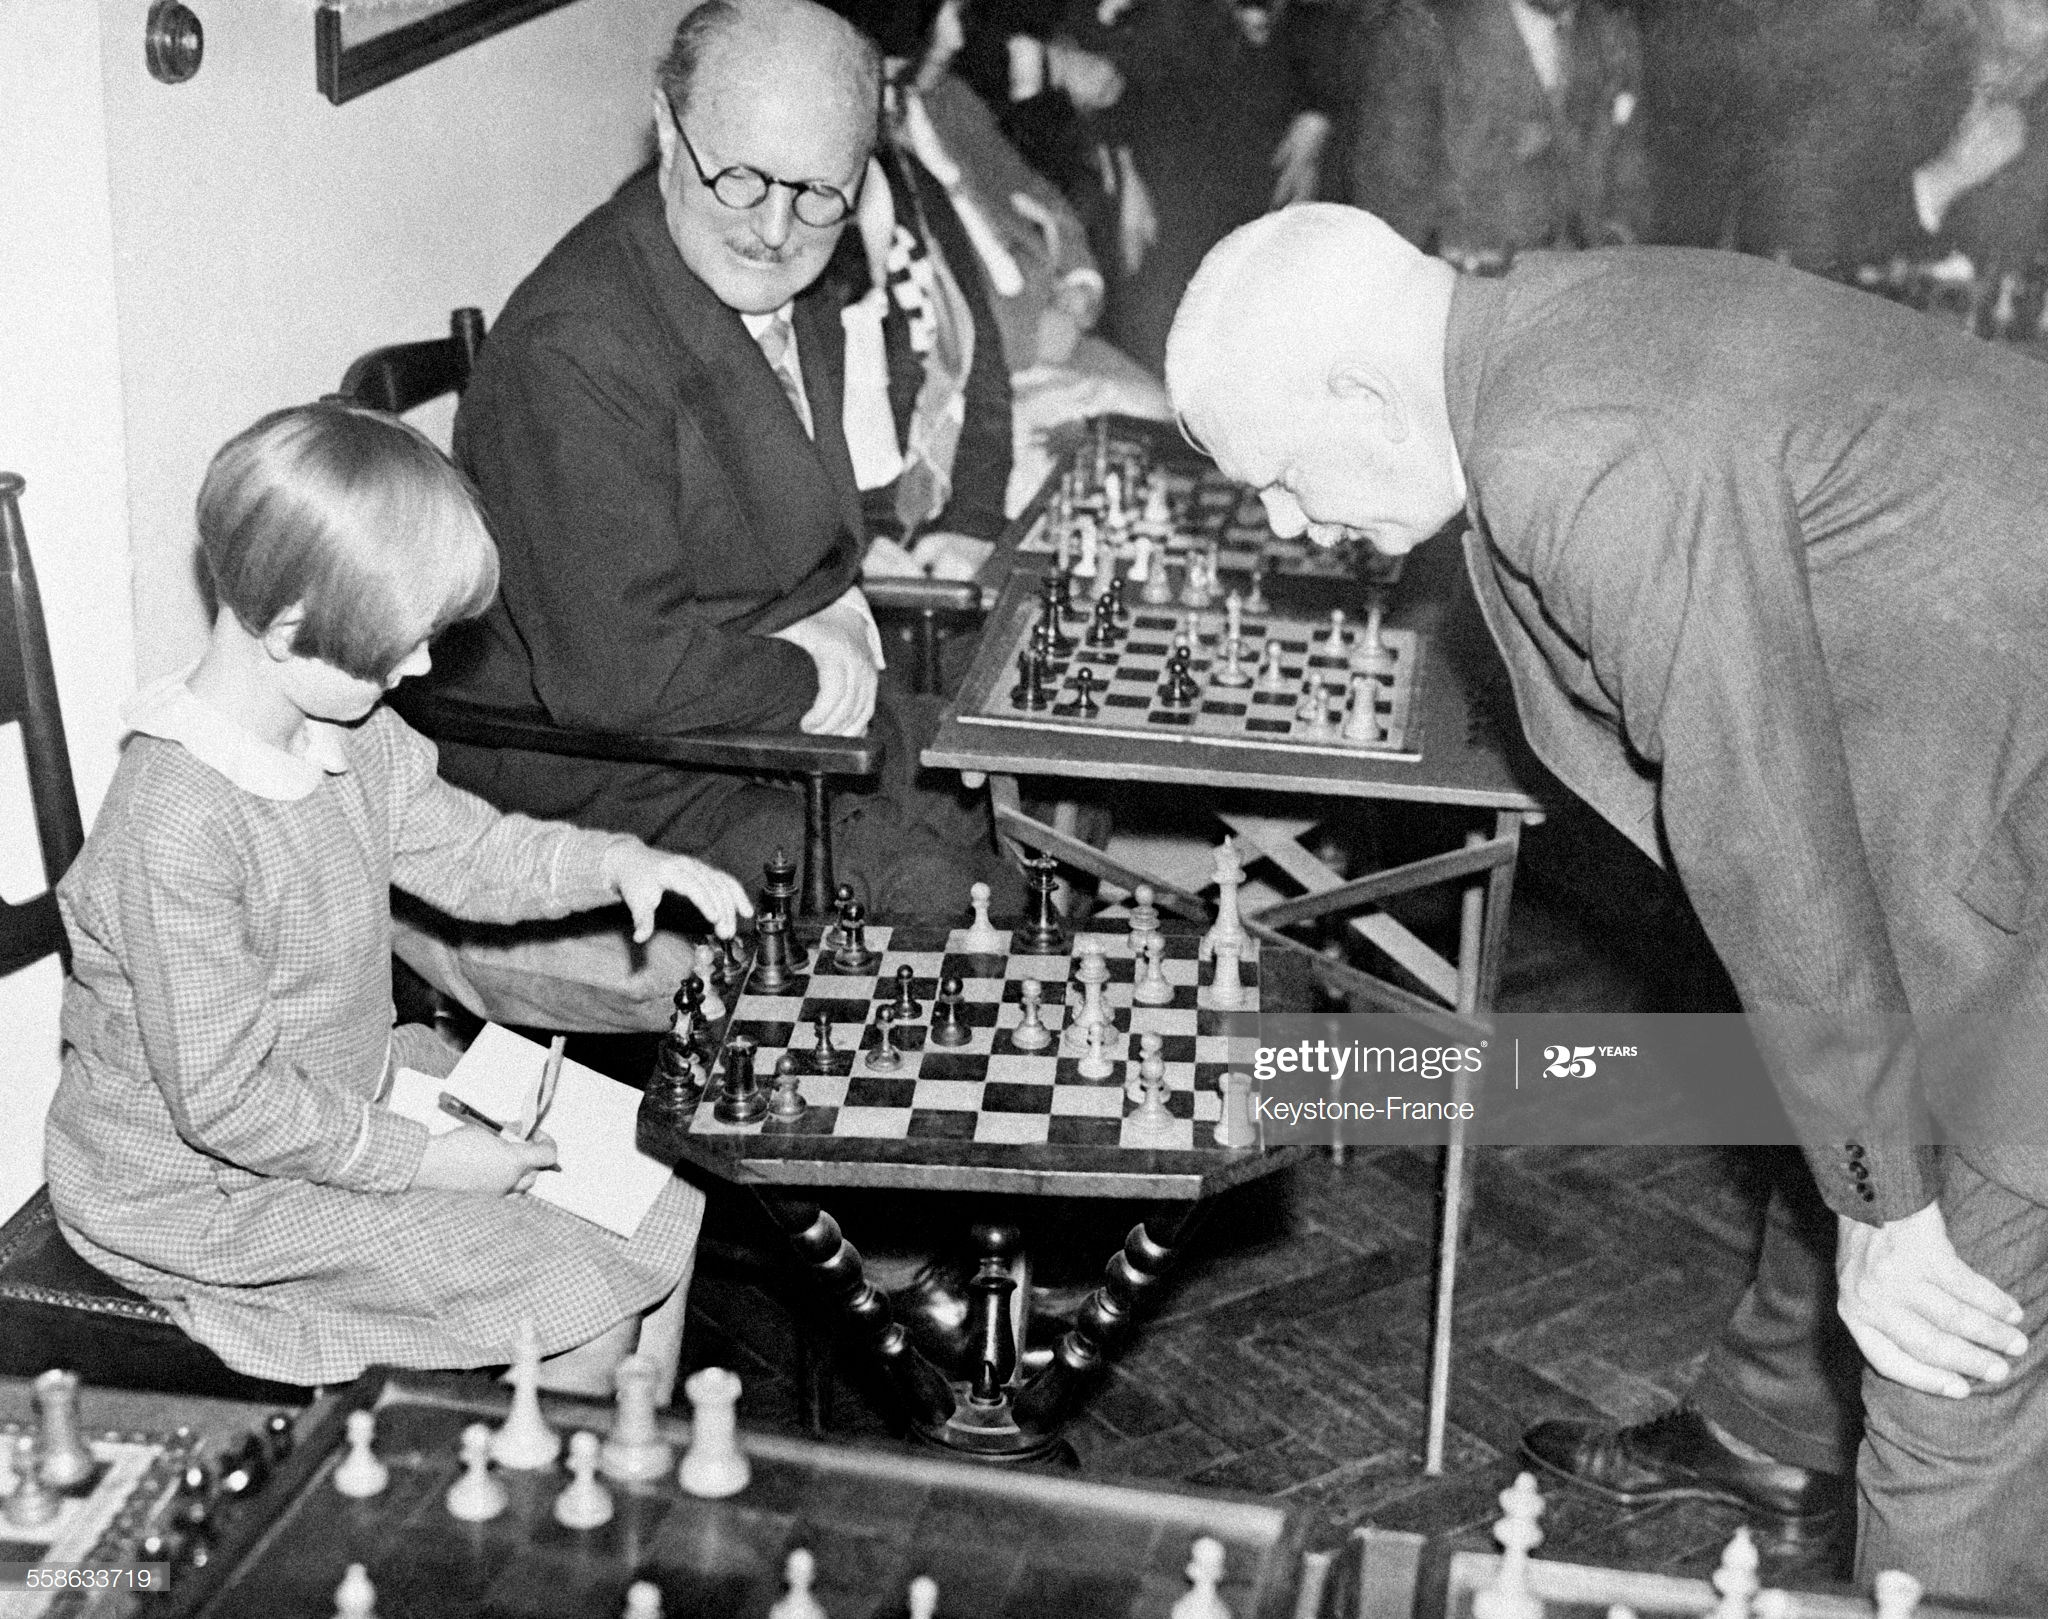 Partie d'échecs Sir Georges Thomas, le célèbre joueur d'échecs britannique, jouant contre sa plus jeune adversaire âgée de 8 ans, à Londres, Royaume-Uni le 24 octobre 1934. (Photo by Keystone-France\Gamma-Rapho via Getty Images)